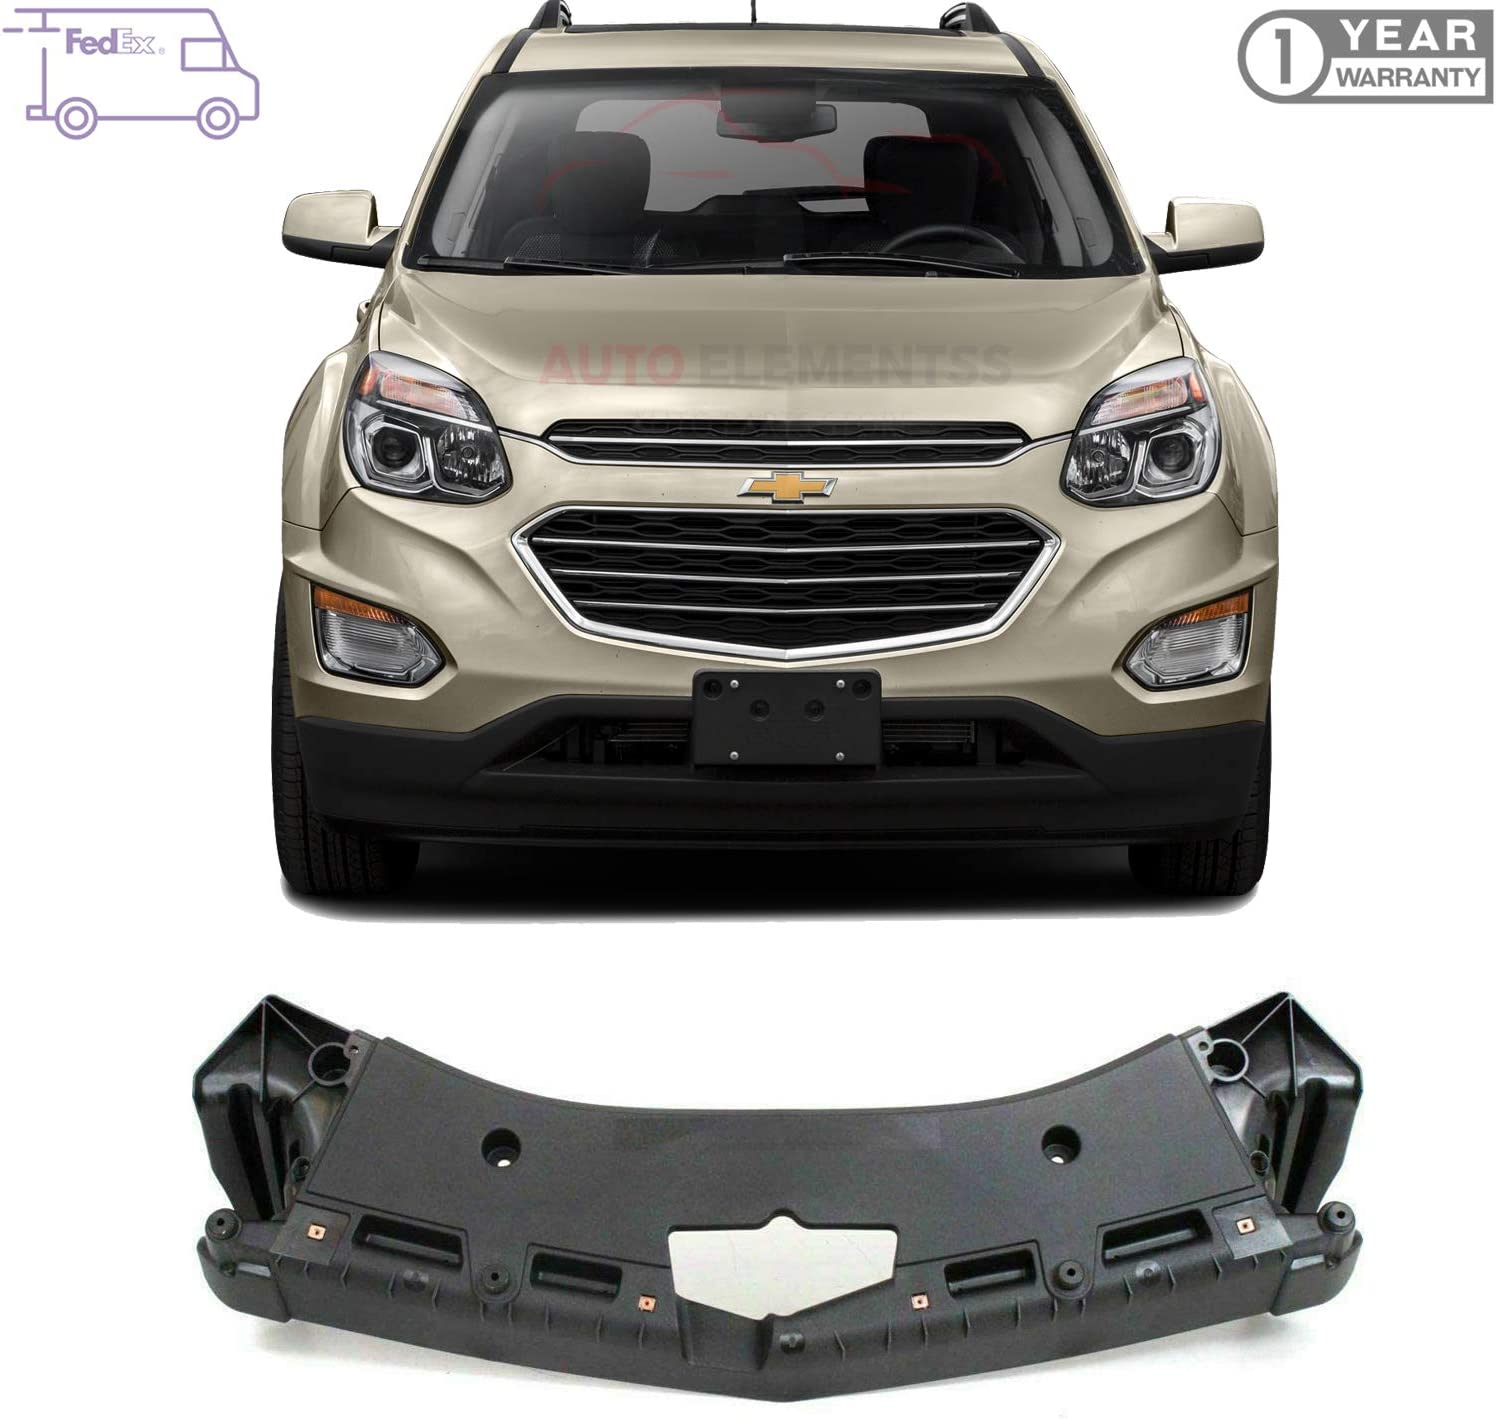 New Front Left and Right Side Fender Liner Set Of 2 For 2010-2013 Chevrolet Equinox Made Of Plastic GM1248223-GM1249223